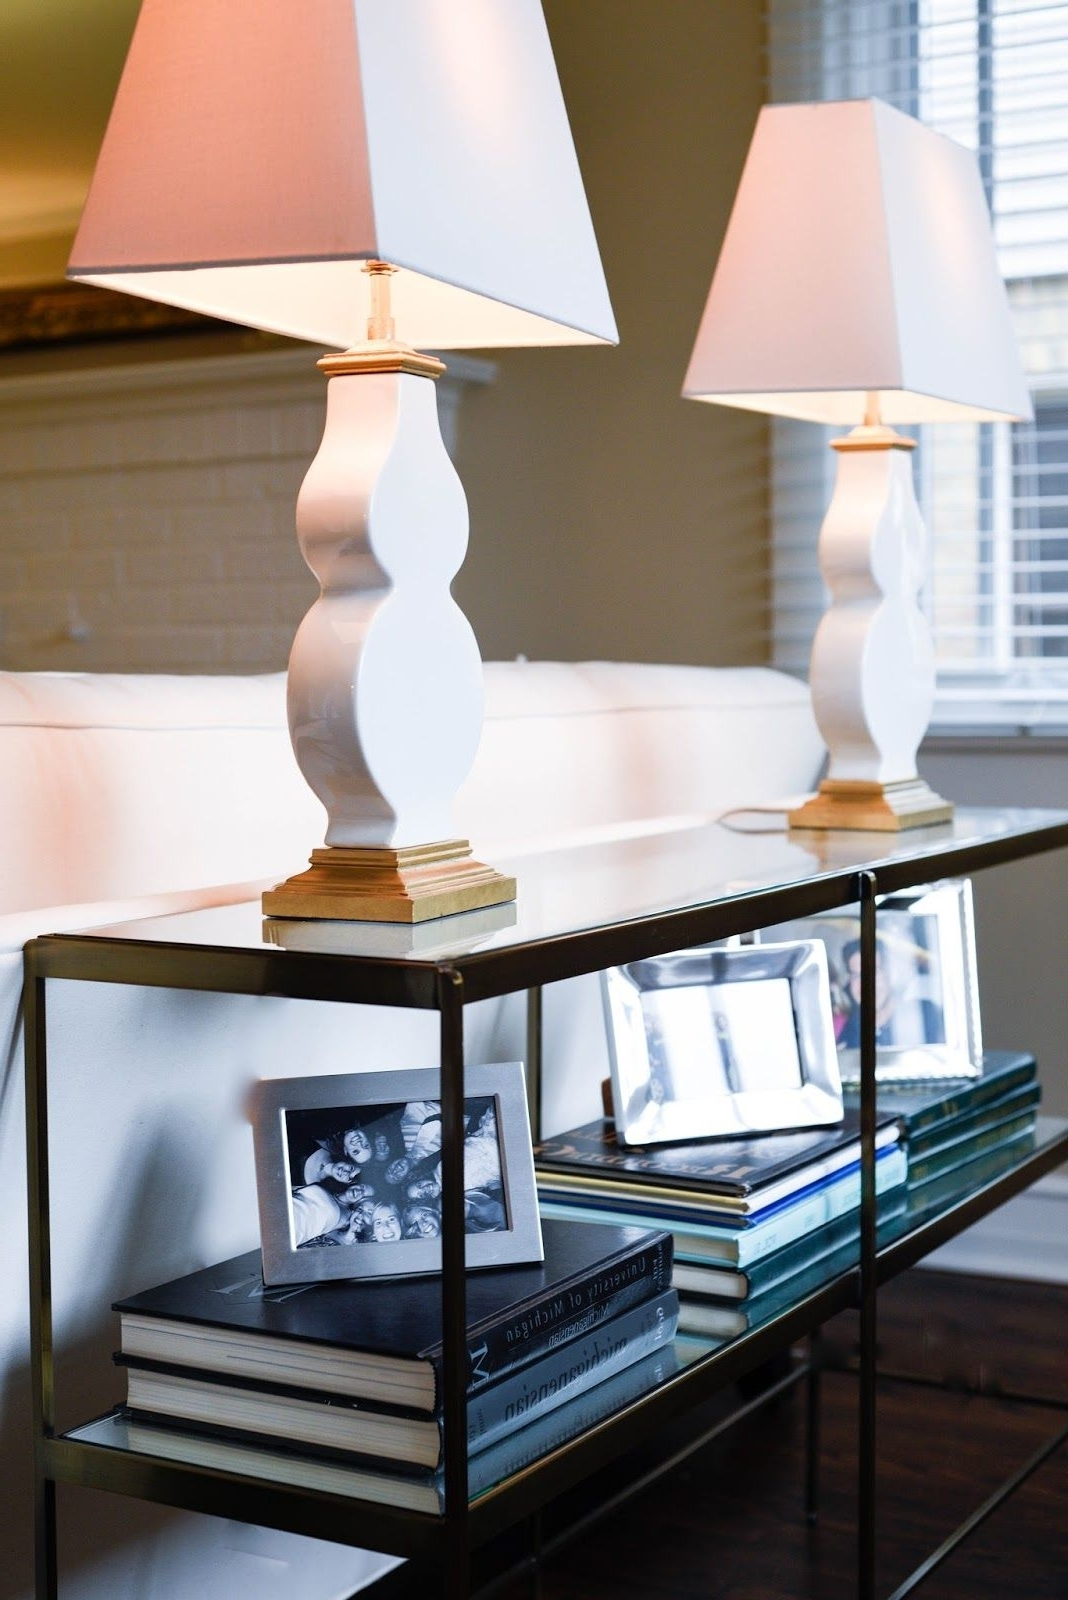 Transitional Pertaining To Favorite Transitional Living Room Table Lamps (View 14 of 20)